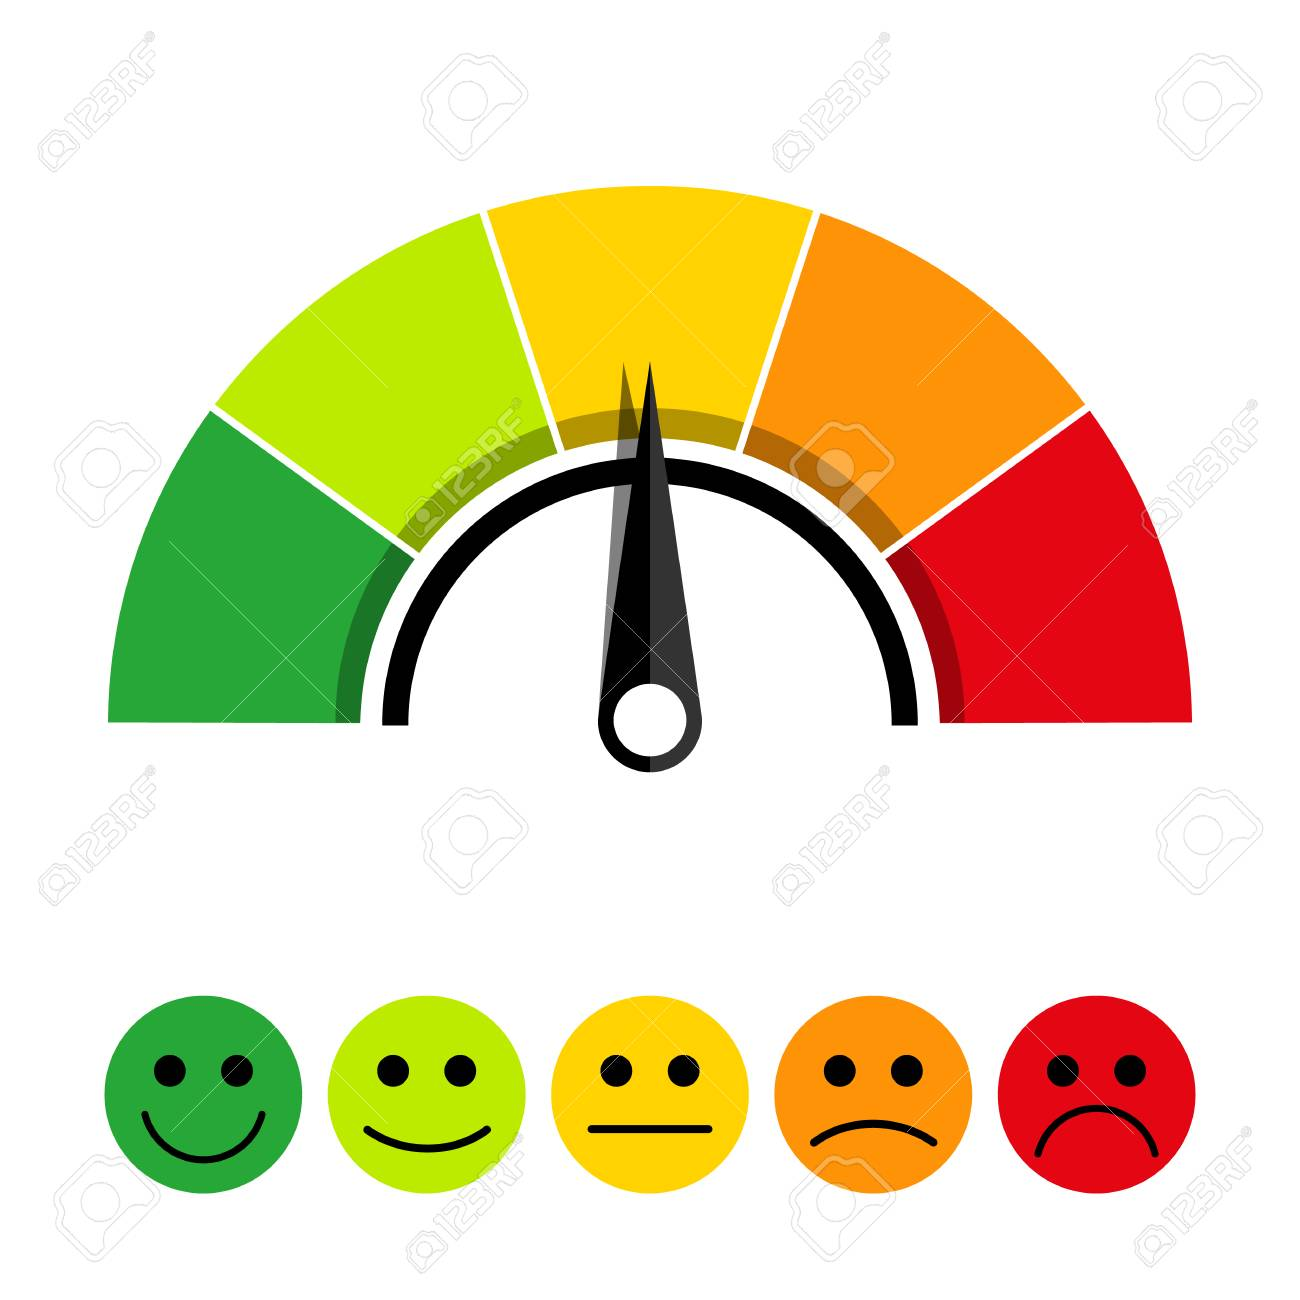 Rating scale of customer satisfaction. The scale of emotions with smiles. - 112273779